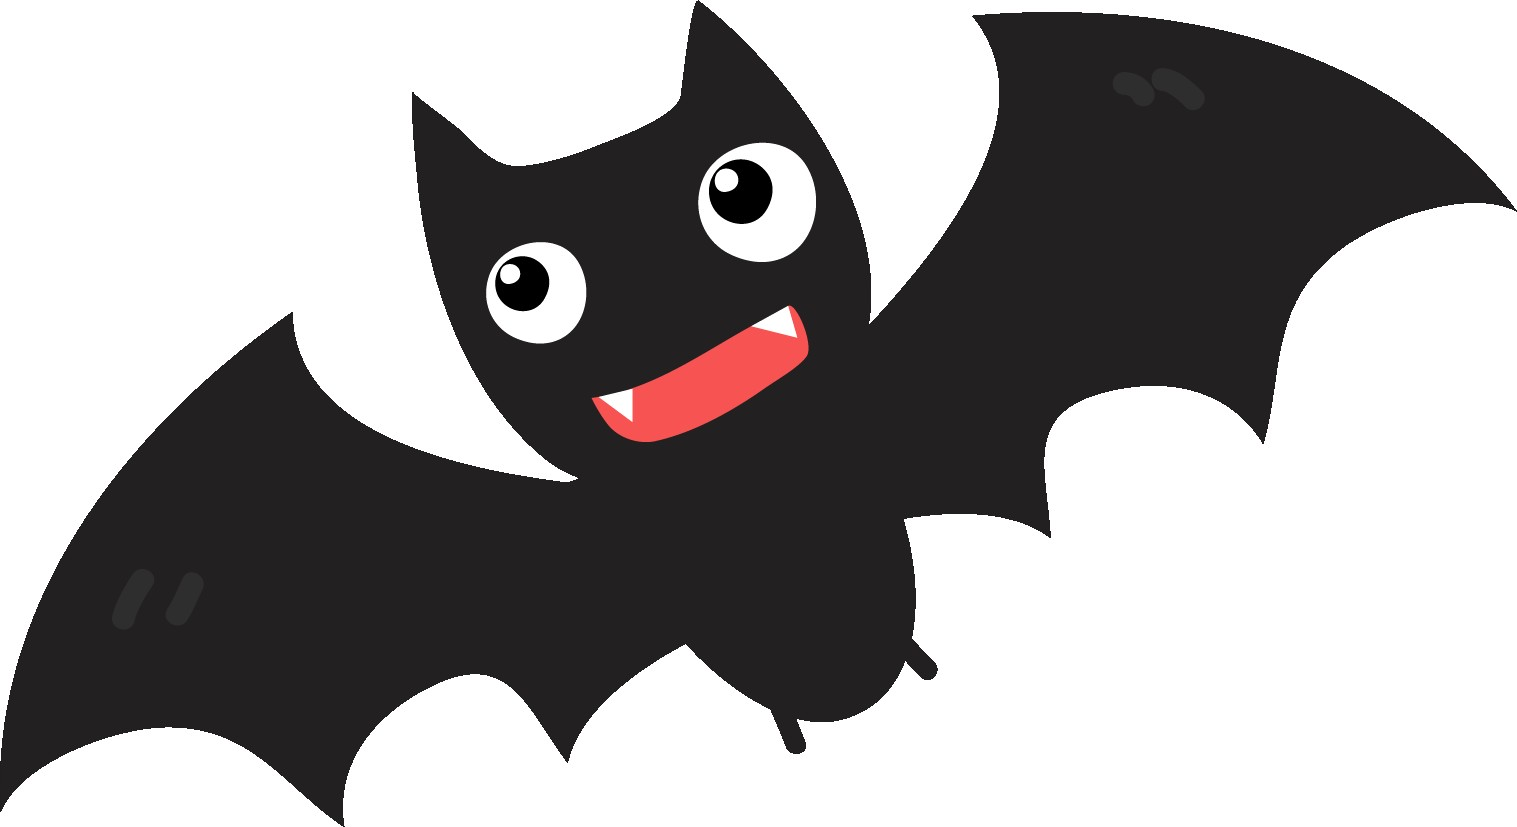 Free Bat Png - Bat Png Transparent Free Images Only Clipart Animal 1517 827 17 Bats